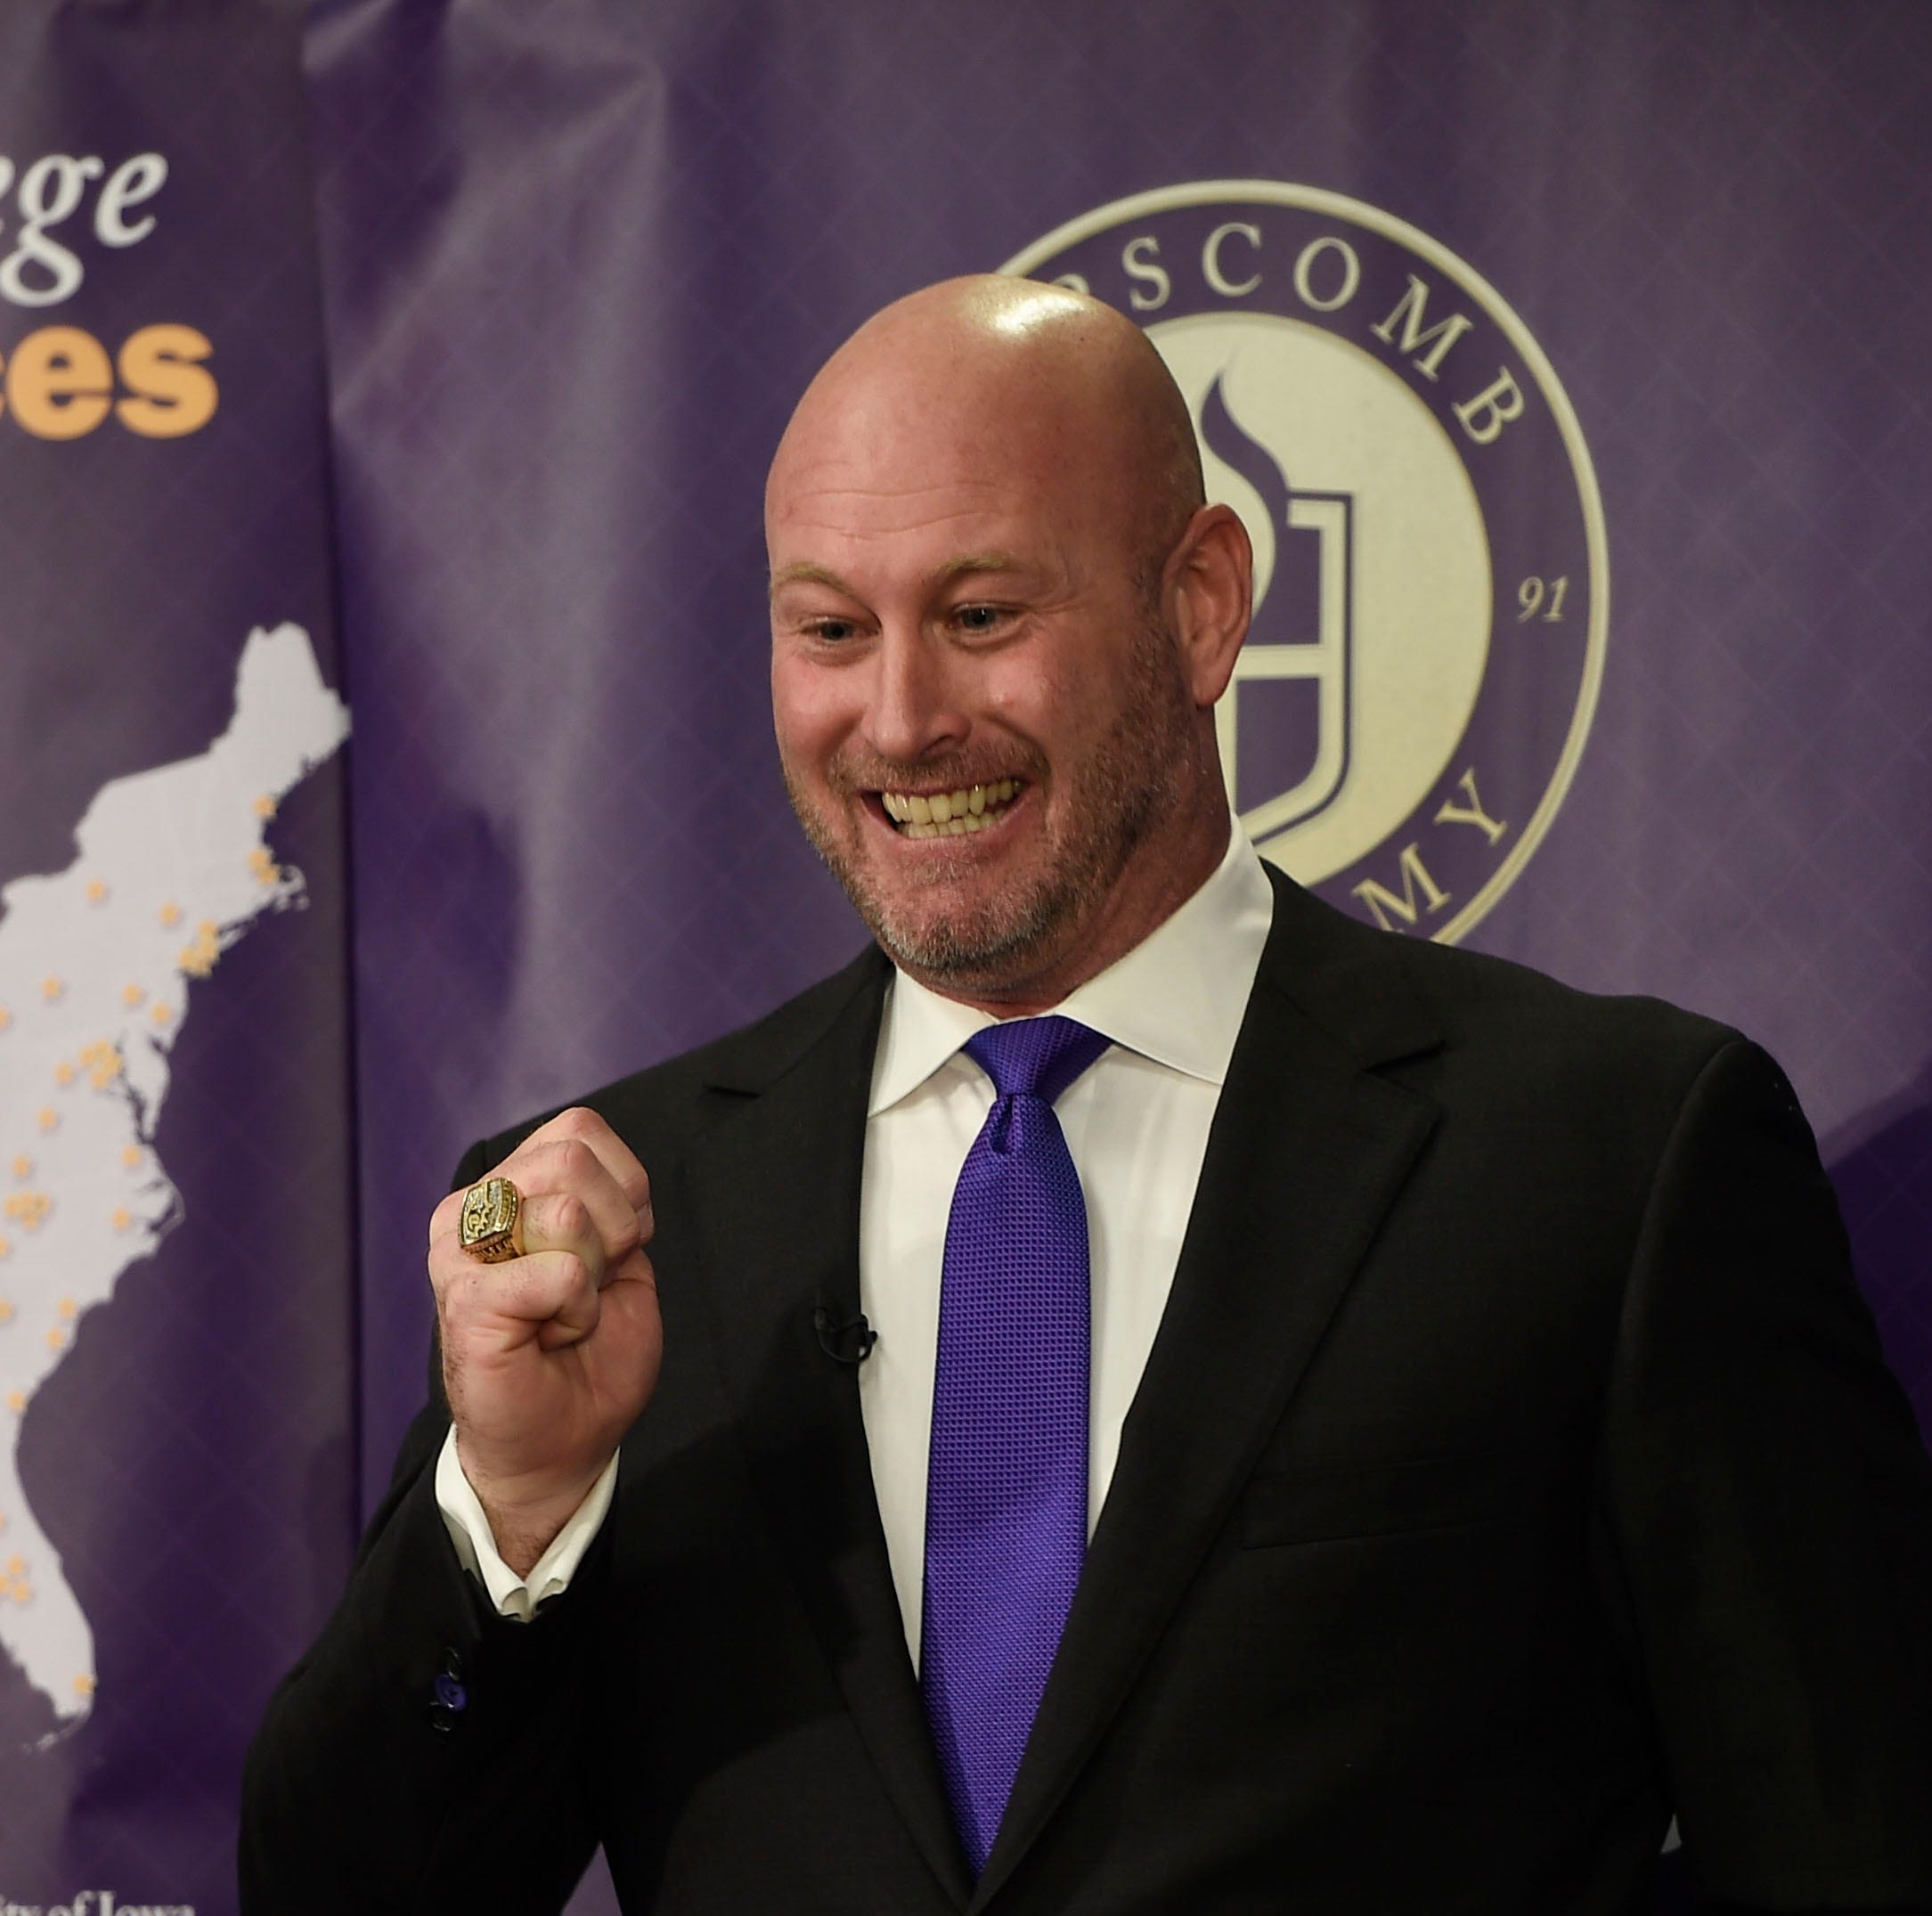 Former NFL quarterback Trent Dilfer named next Lipscomb Academy football coach